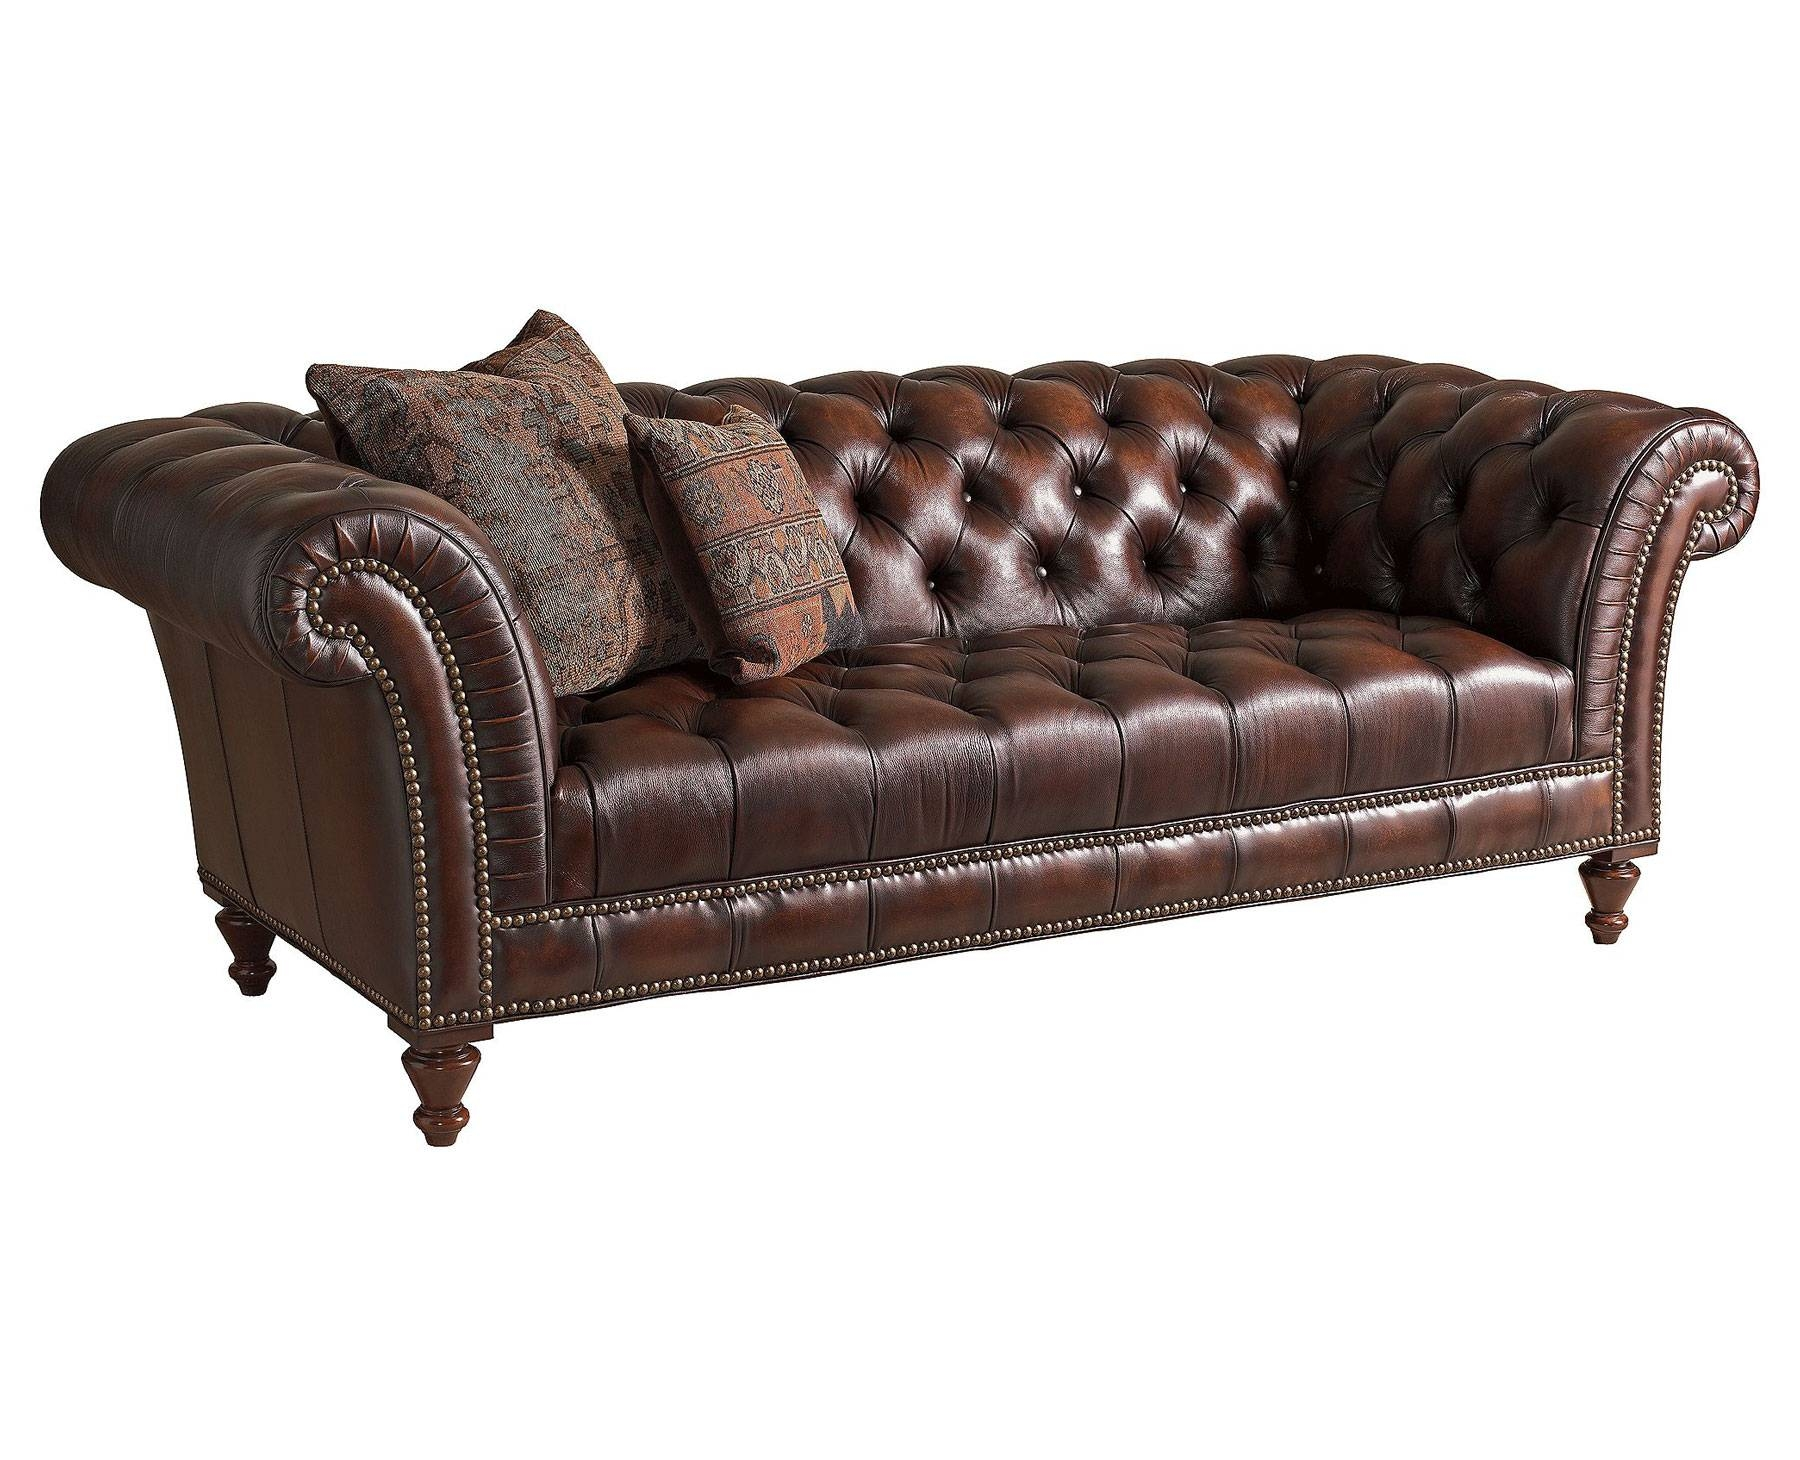 Sofas Center : Leather Tufted Sofa With Rolled Arms Modern Like Intended For Cheap Tufted Sofas (View 22 of 30)